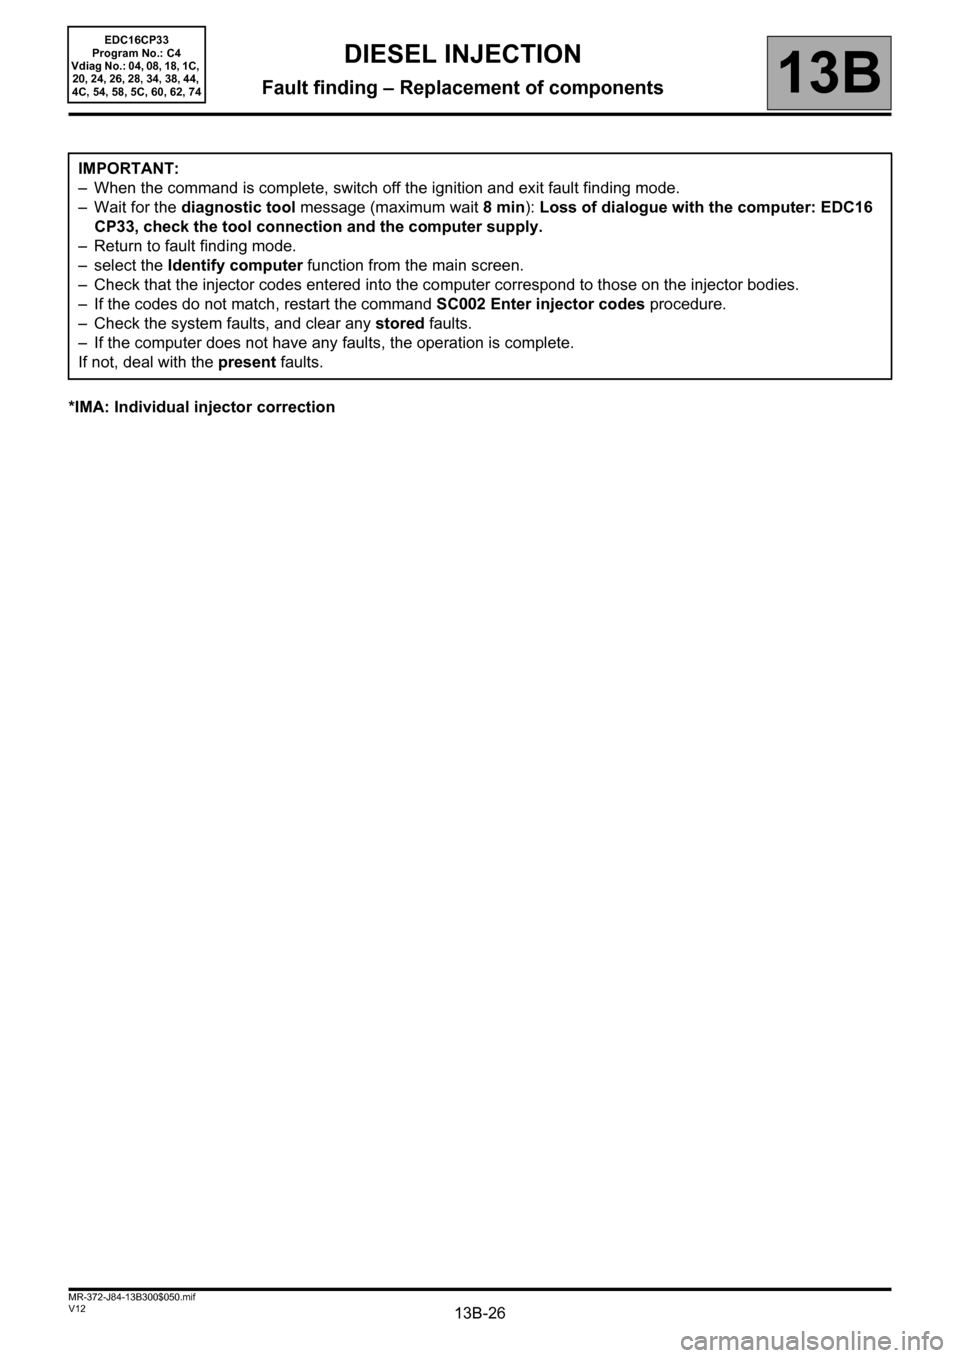 RENAULT SCENIC 2012 J95 / 3.G Engine And Peripherals EDC16CP33 Workshop Manual, Page 26